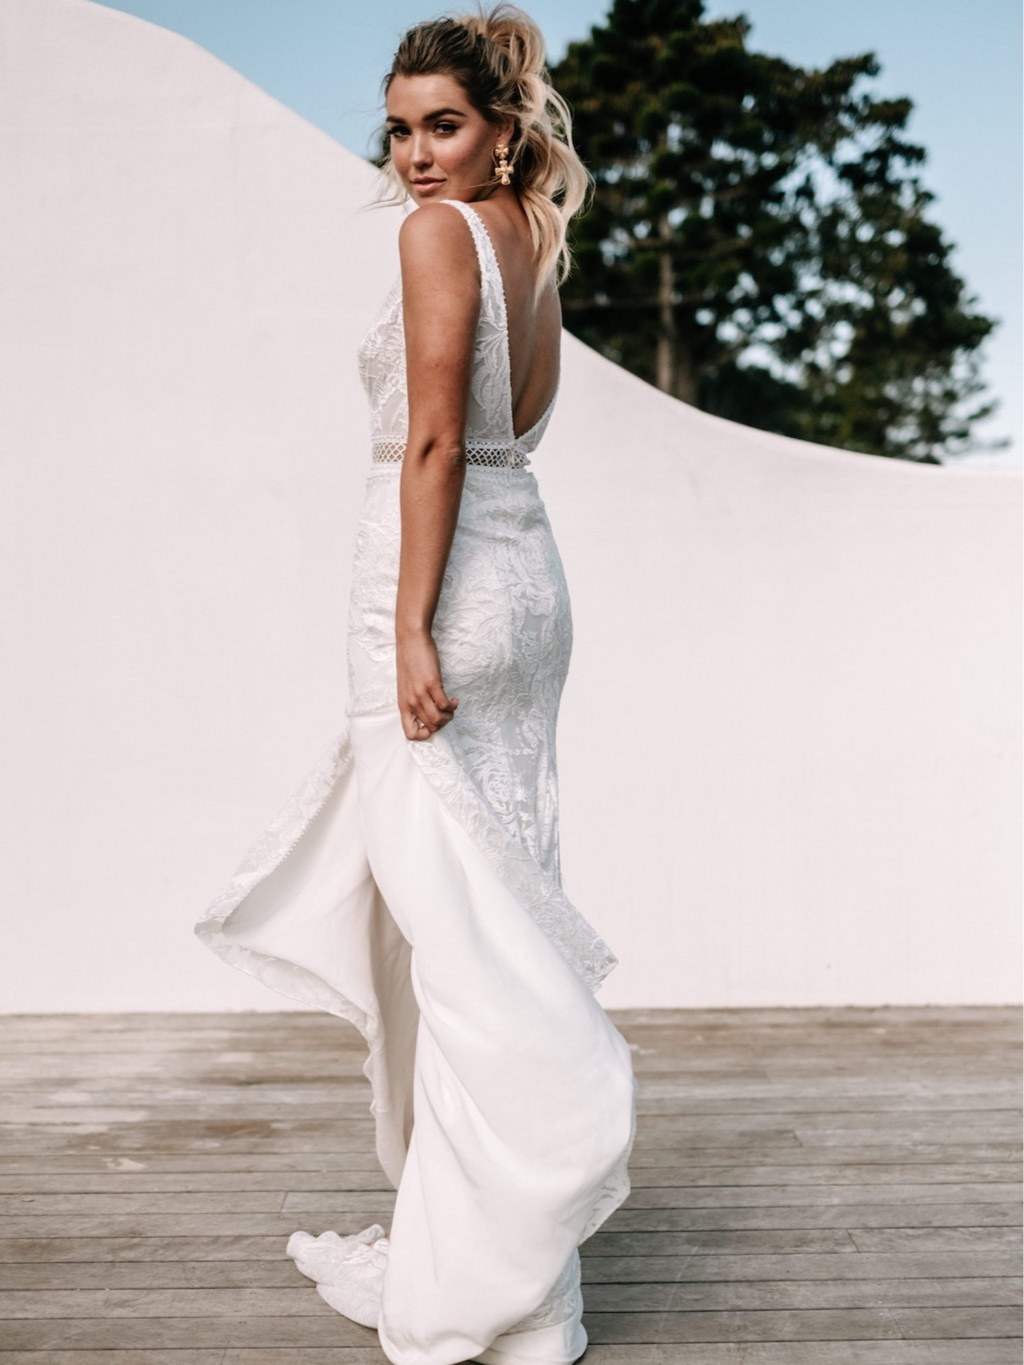 Jane Hill - PRICE RANGE: $2800-$6500MODERN ROMANCE WITH A LUXE TWIST.A leading figure in the Australian bridalindustry, Jane Hill's handmade gownsare impeccably made and havethe most incredible fit and feel.